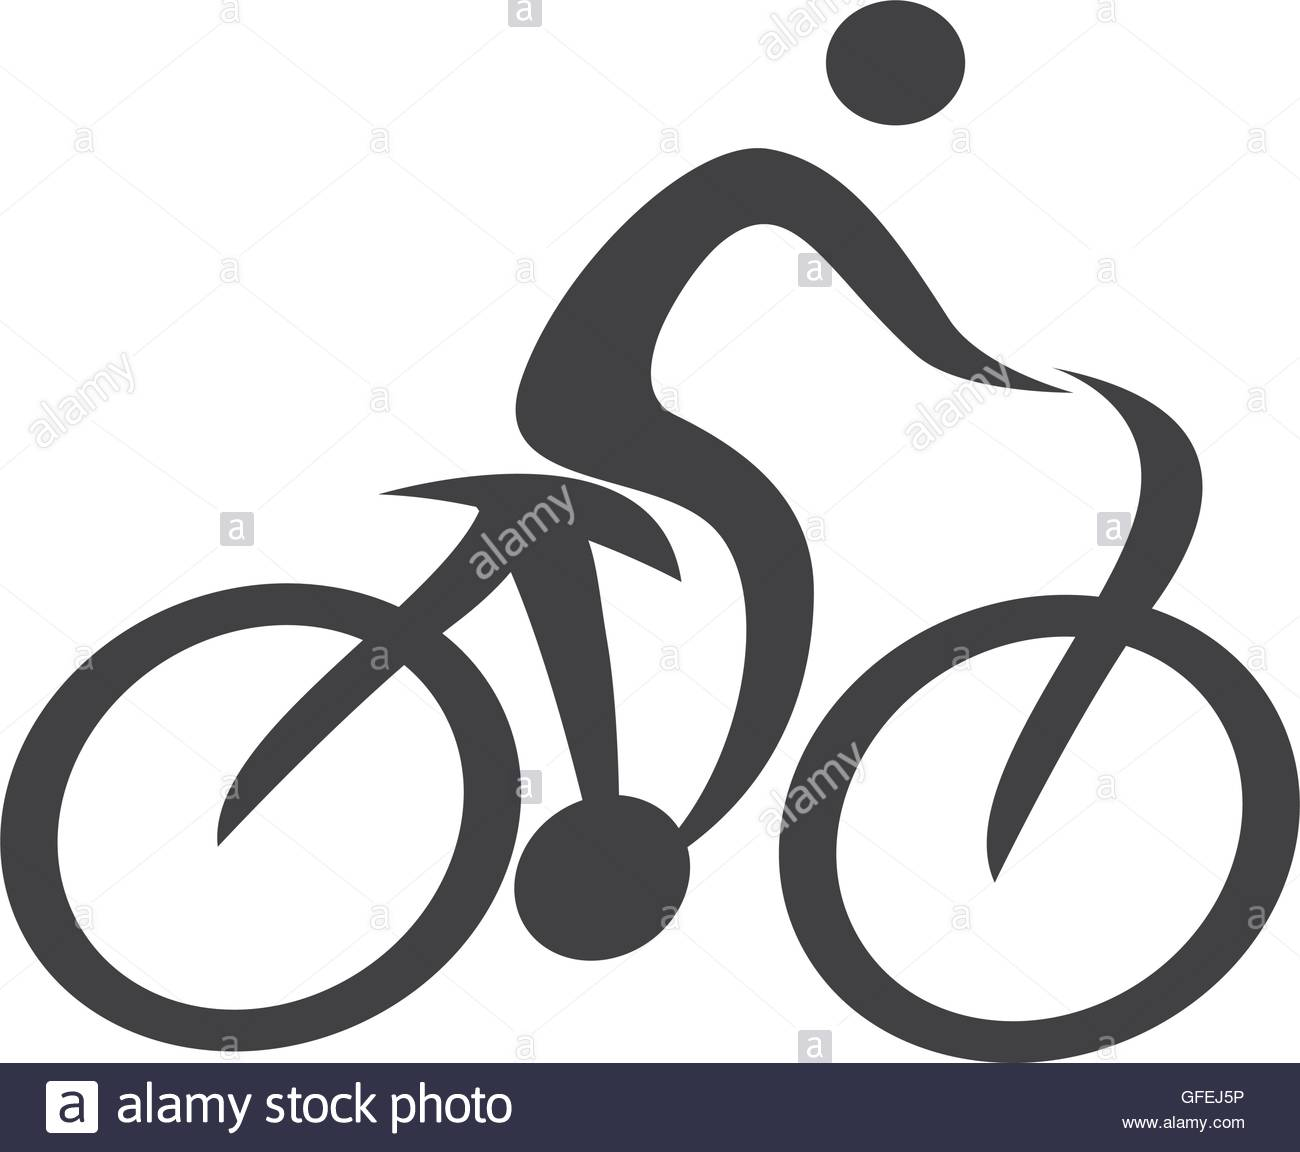 1300x1152 Human Figure Silhouette Bicycle Icon Stock Vector Art